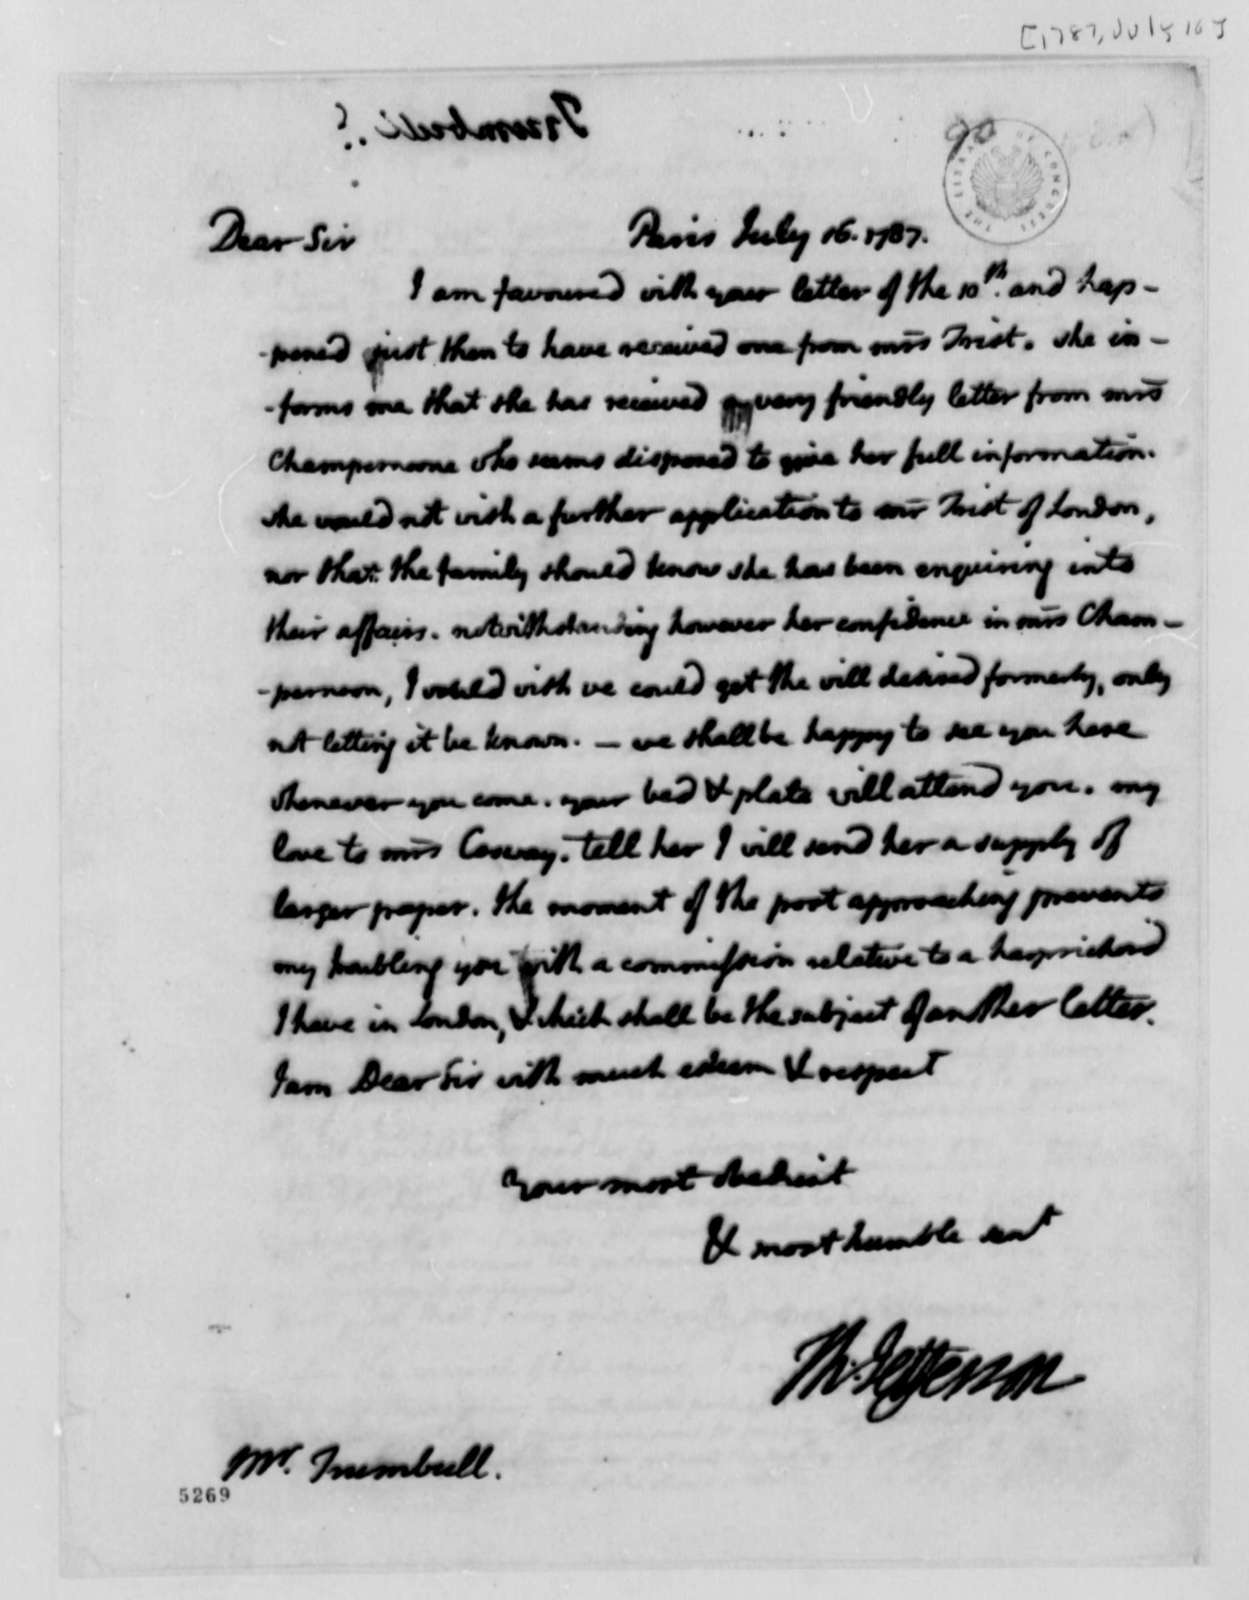 Thomas Jefferson to John Trumbull, July 16, 1787